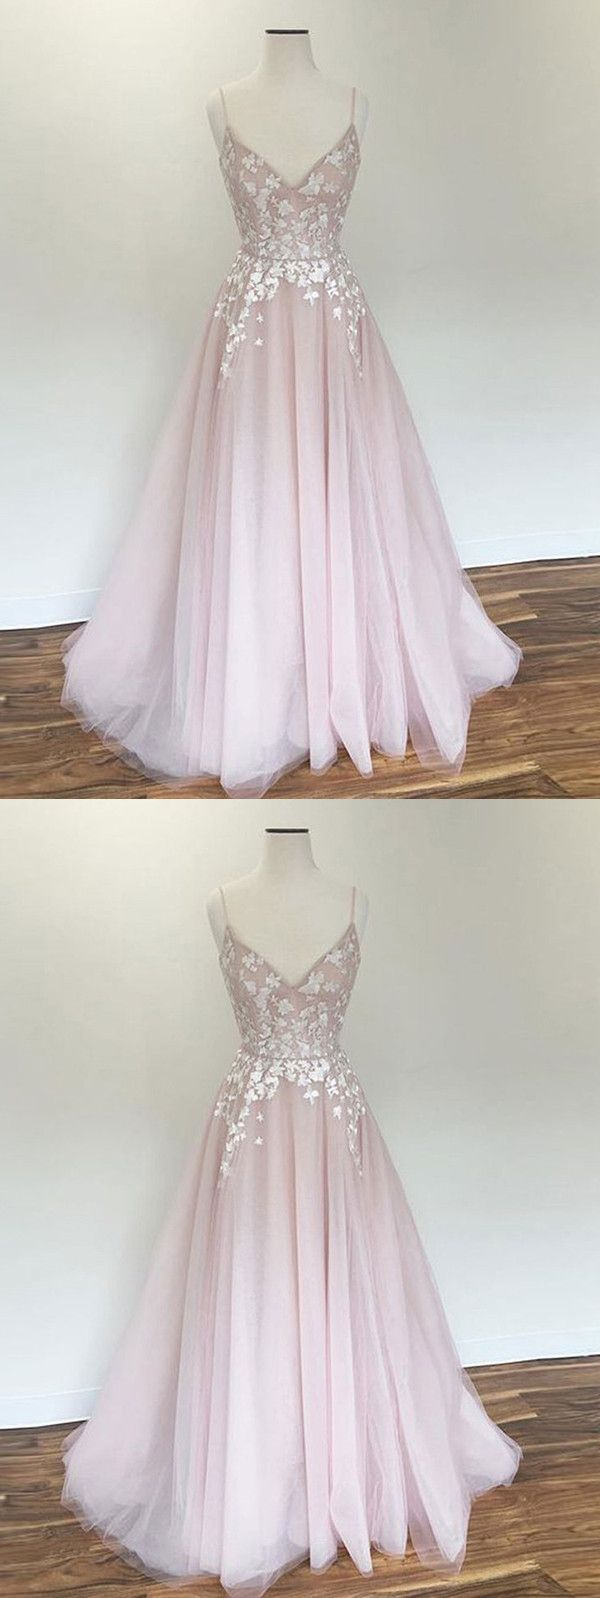 Chic pink prom dress lace cheap long prom dress vb african